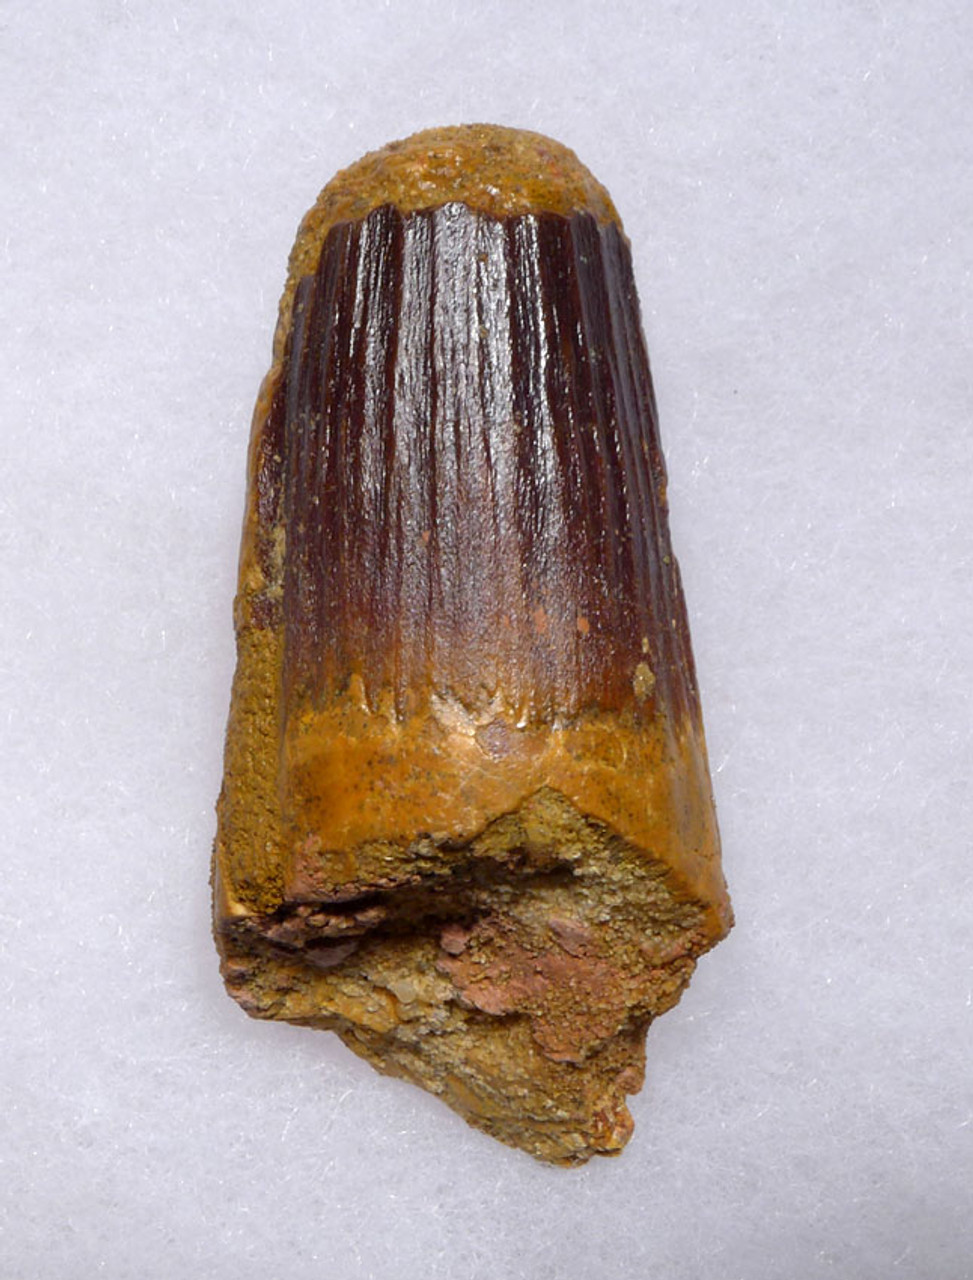 HEAVILY WORN LARGE SPINOSAURUS DINOSAUR FOSSIL TOOTH *DT5-324